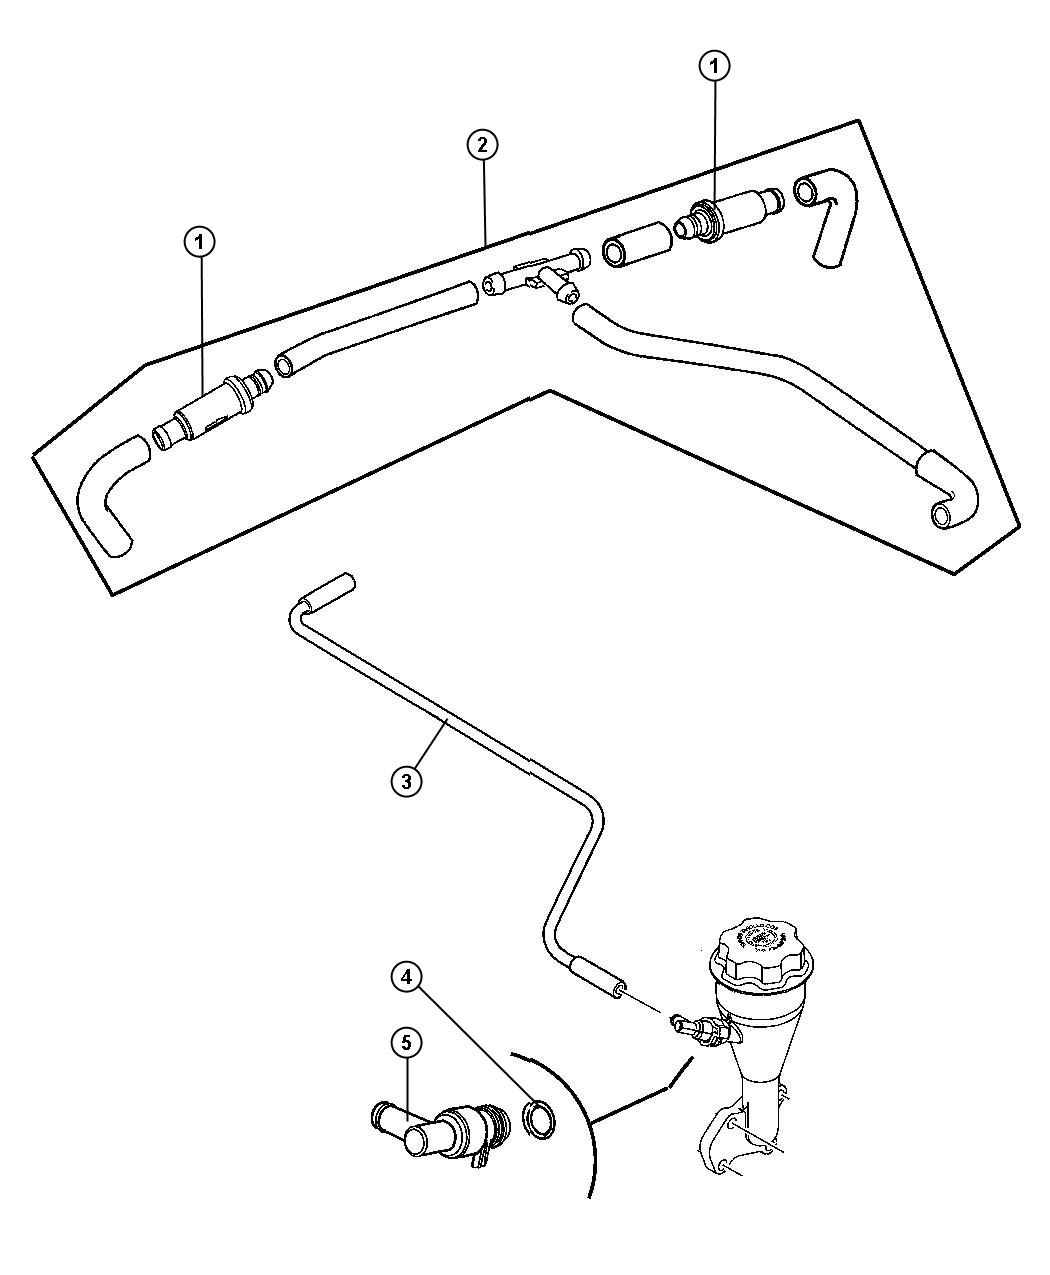 Jeep Wrangler 3 8l Belt Diagram additionally 4htco Mazda Tribute Crankshaft Sensor Located besides 2002 Dodge Other Diagram furthermore Ignition Switch Ign Thermal Cost Key Diagram In Universal Wiring likewise P 0900c1528008aaee. on jeep 4 2 engine vacuum diagram